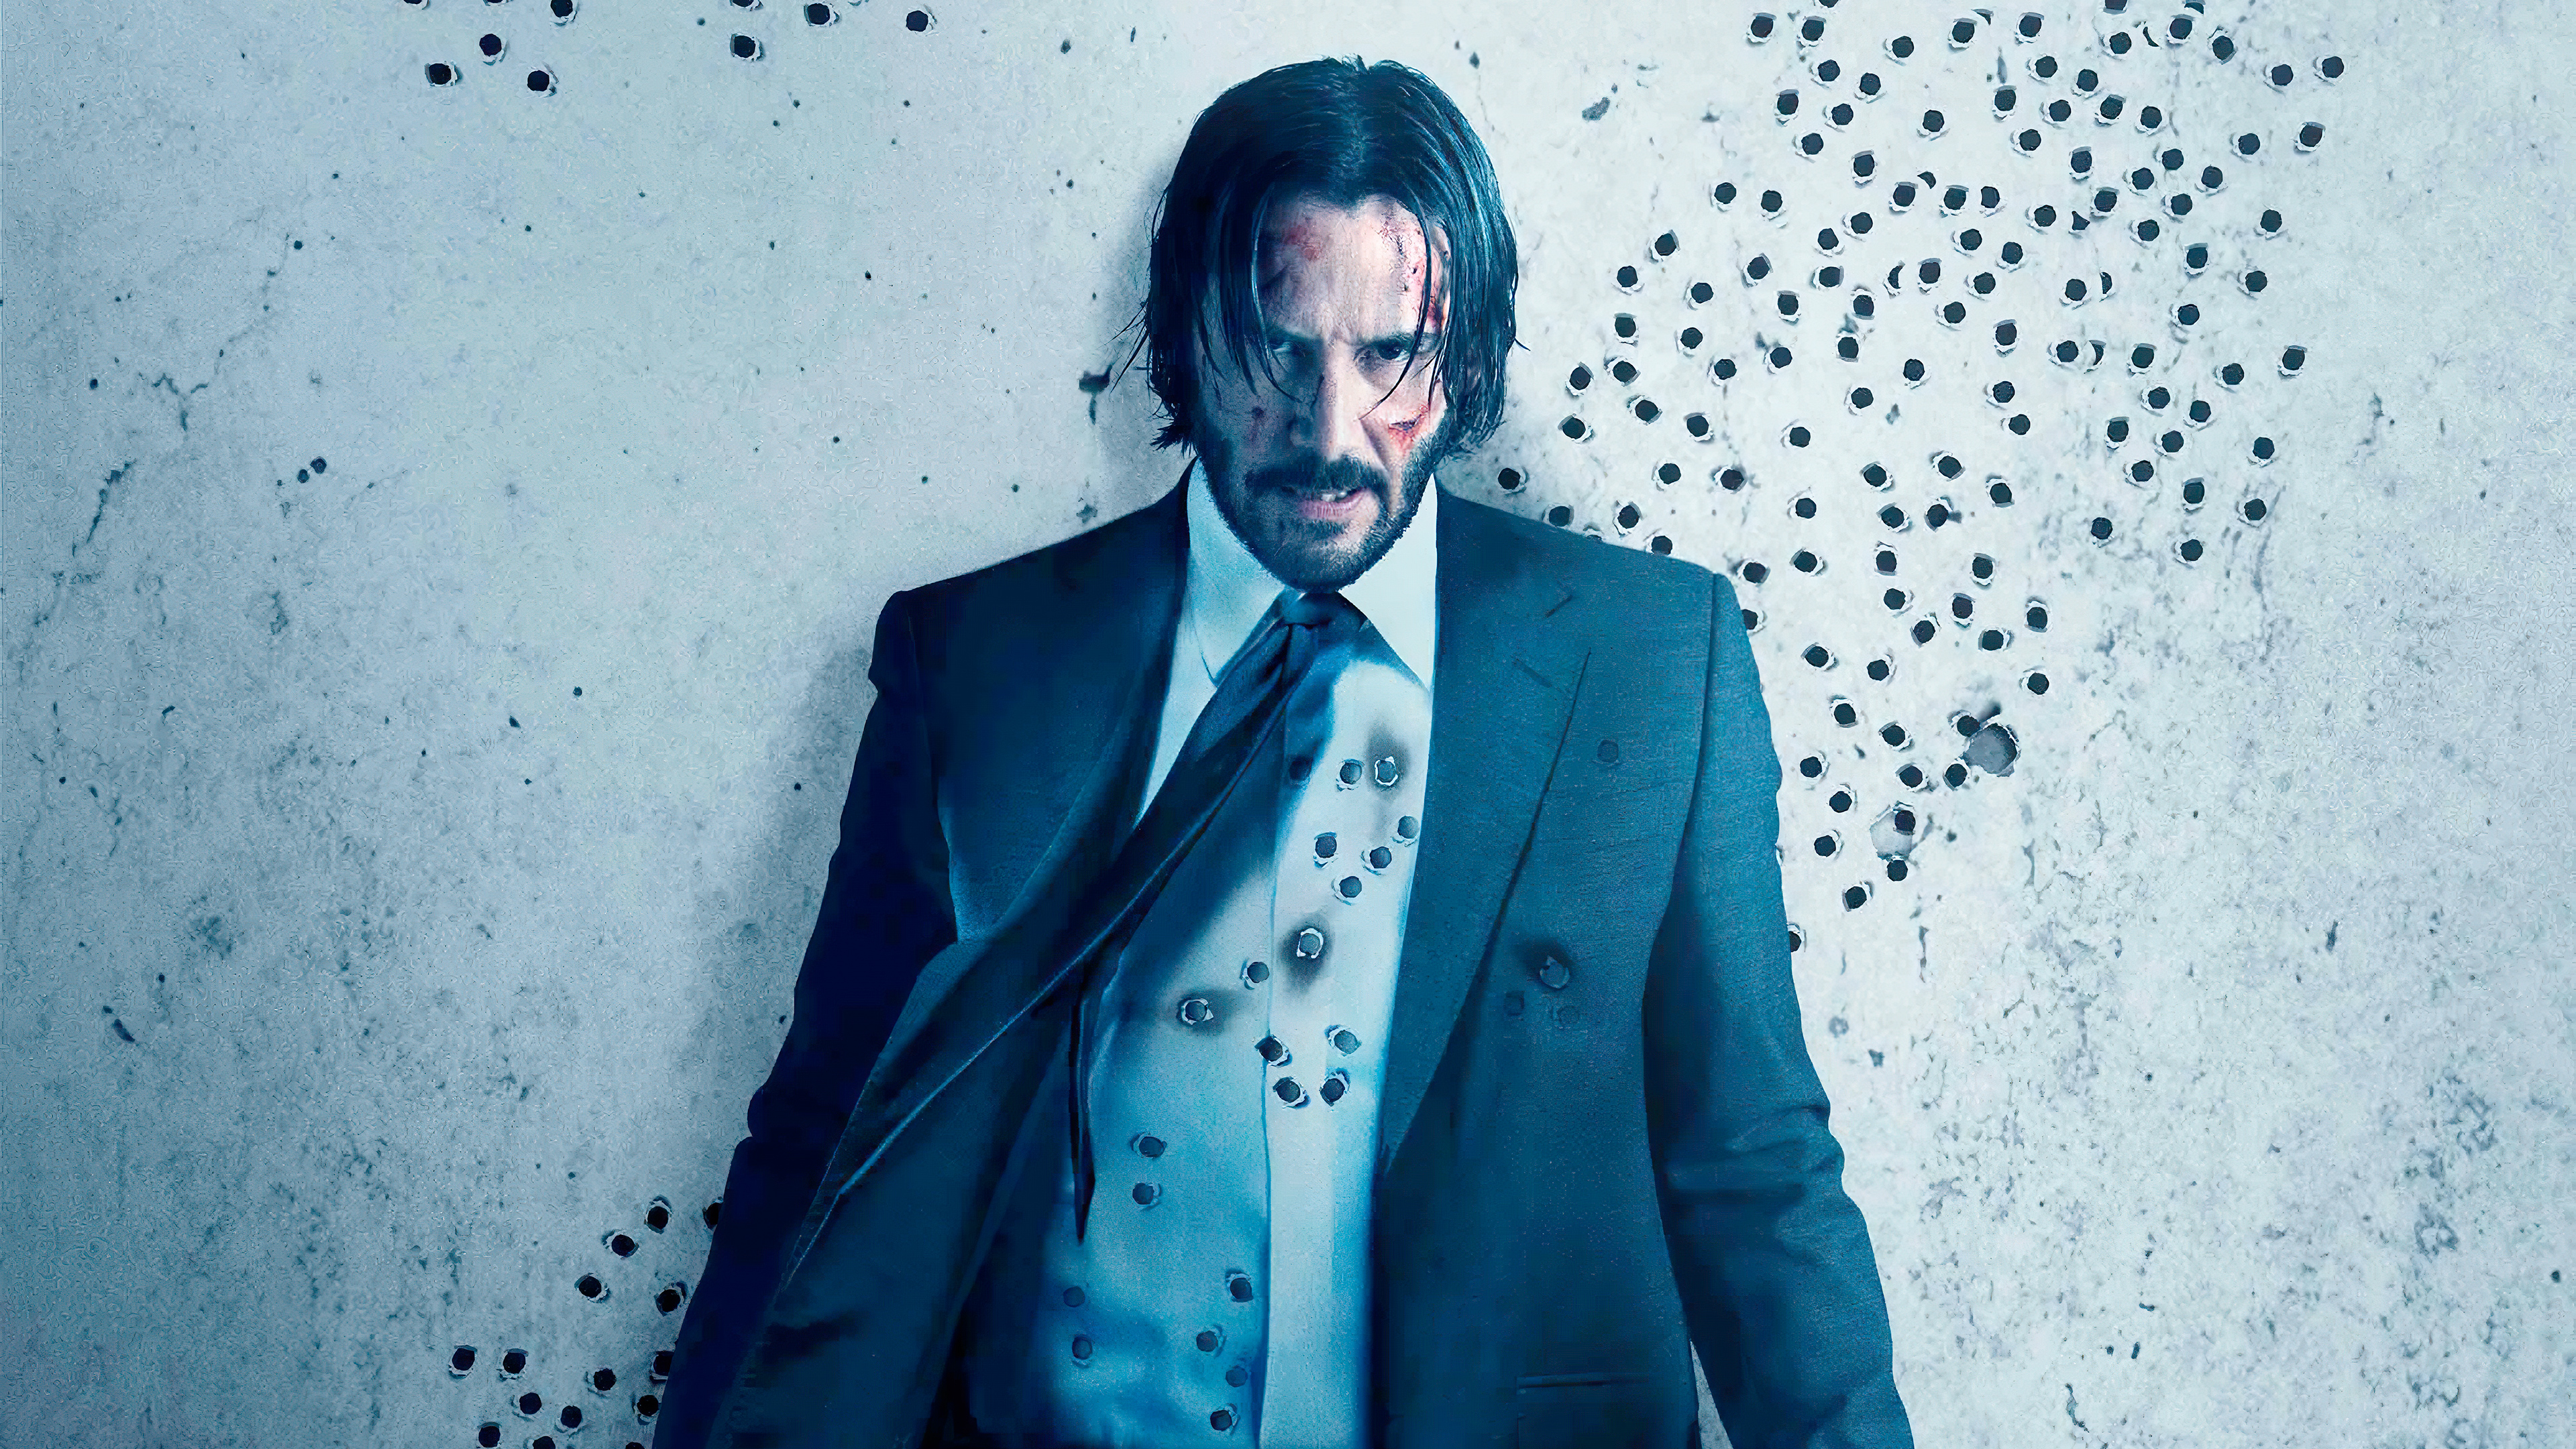 john wick chapter 2 1572371053 - John Wick Chapter 2 - movies wallpapers, keanu reeves wallpapers, john wick wallpapers, john wick chapter 2 wallpapers, 4k-wallpapers, 2017 movies wallpapers